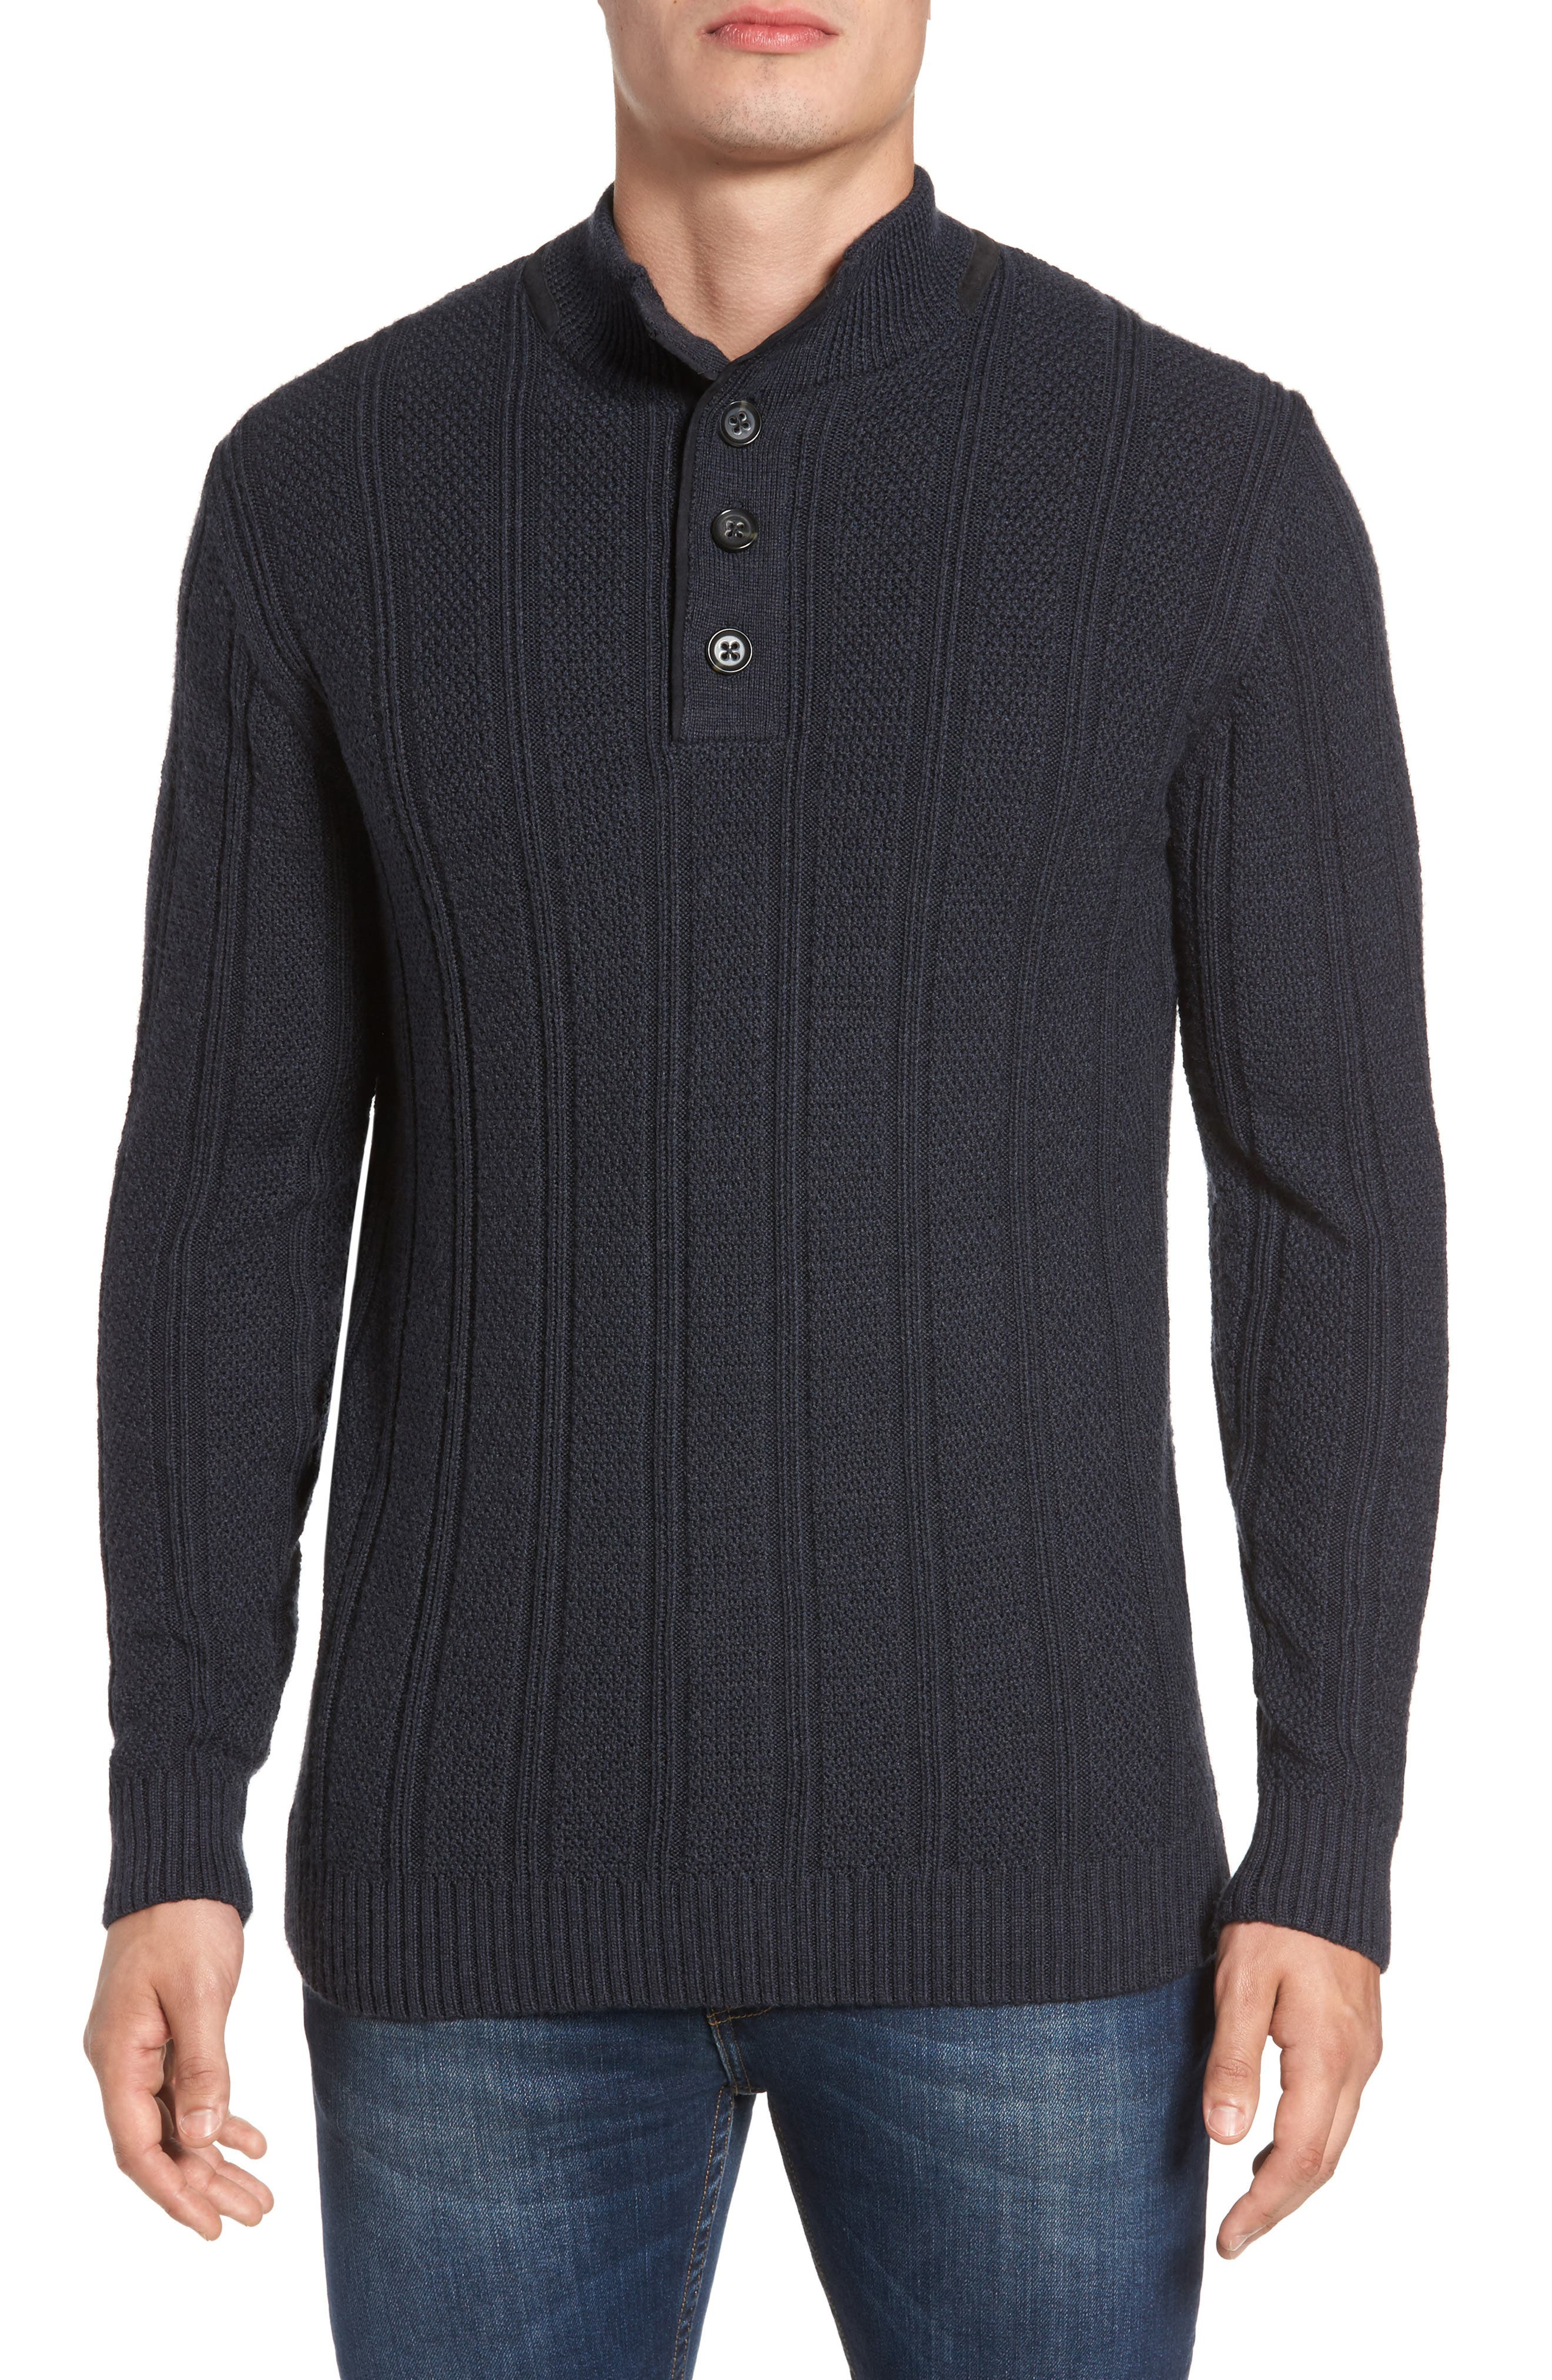 Main Image - Rodd & Gunn Sovereign Island Wool Sweater